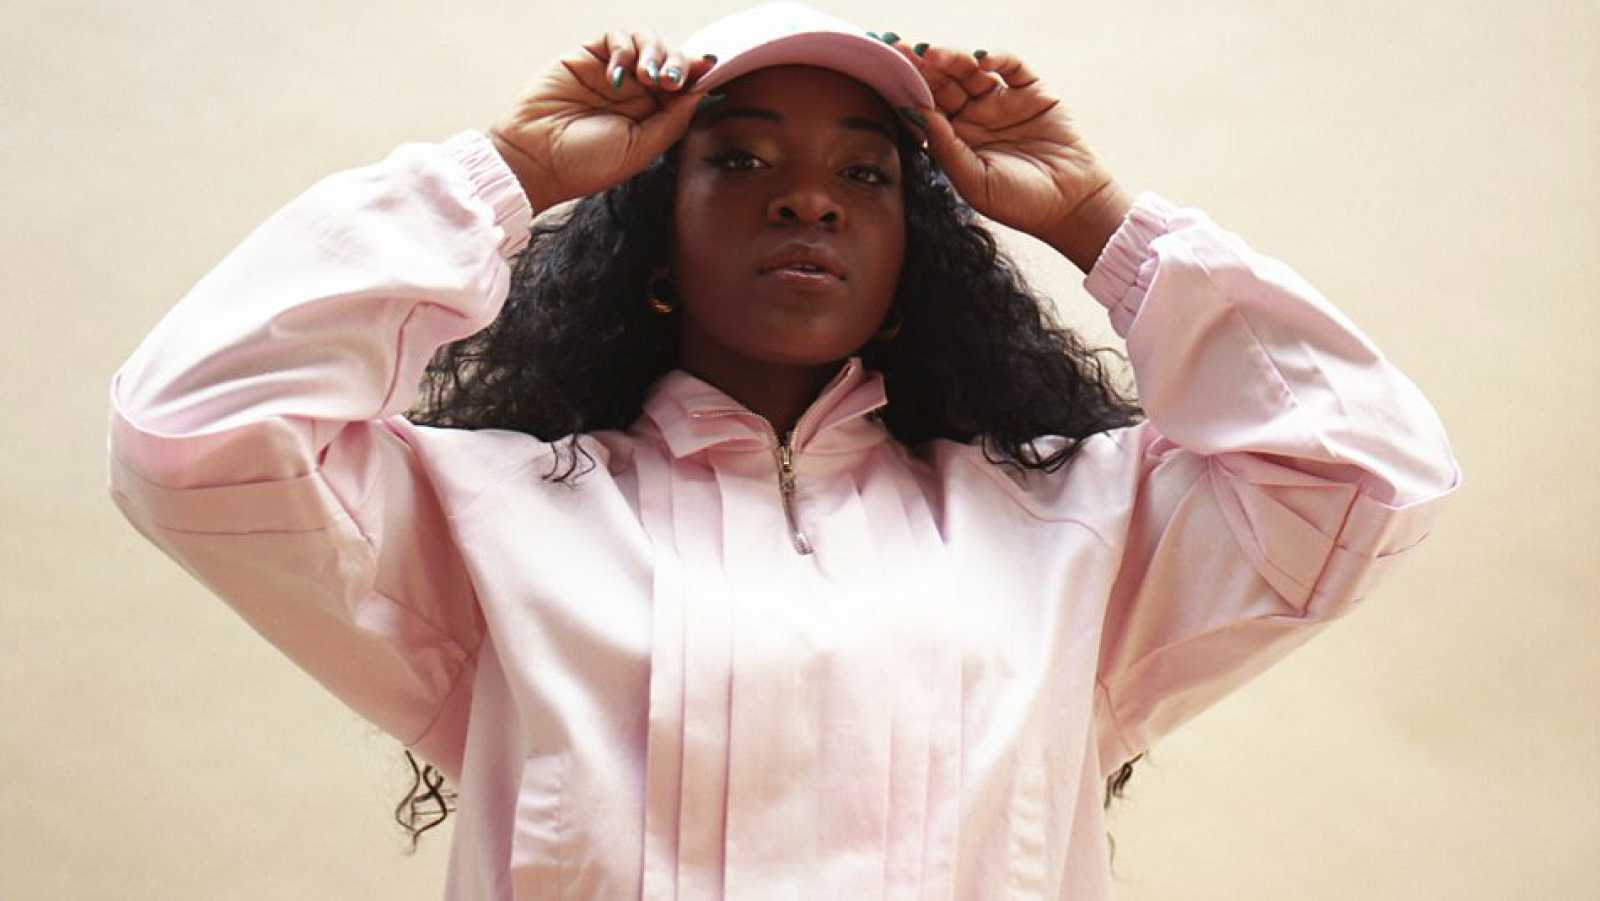 The Selector - Ray BLK is the pride of WorldPride - Escuchar ahora